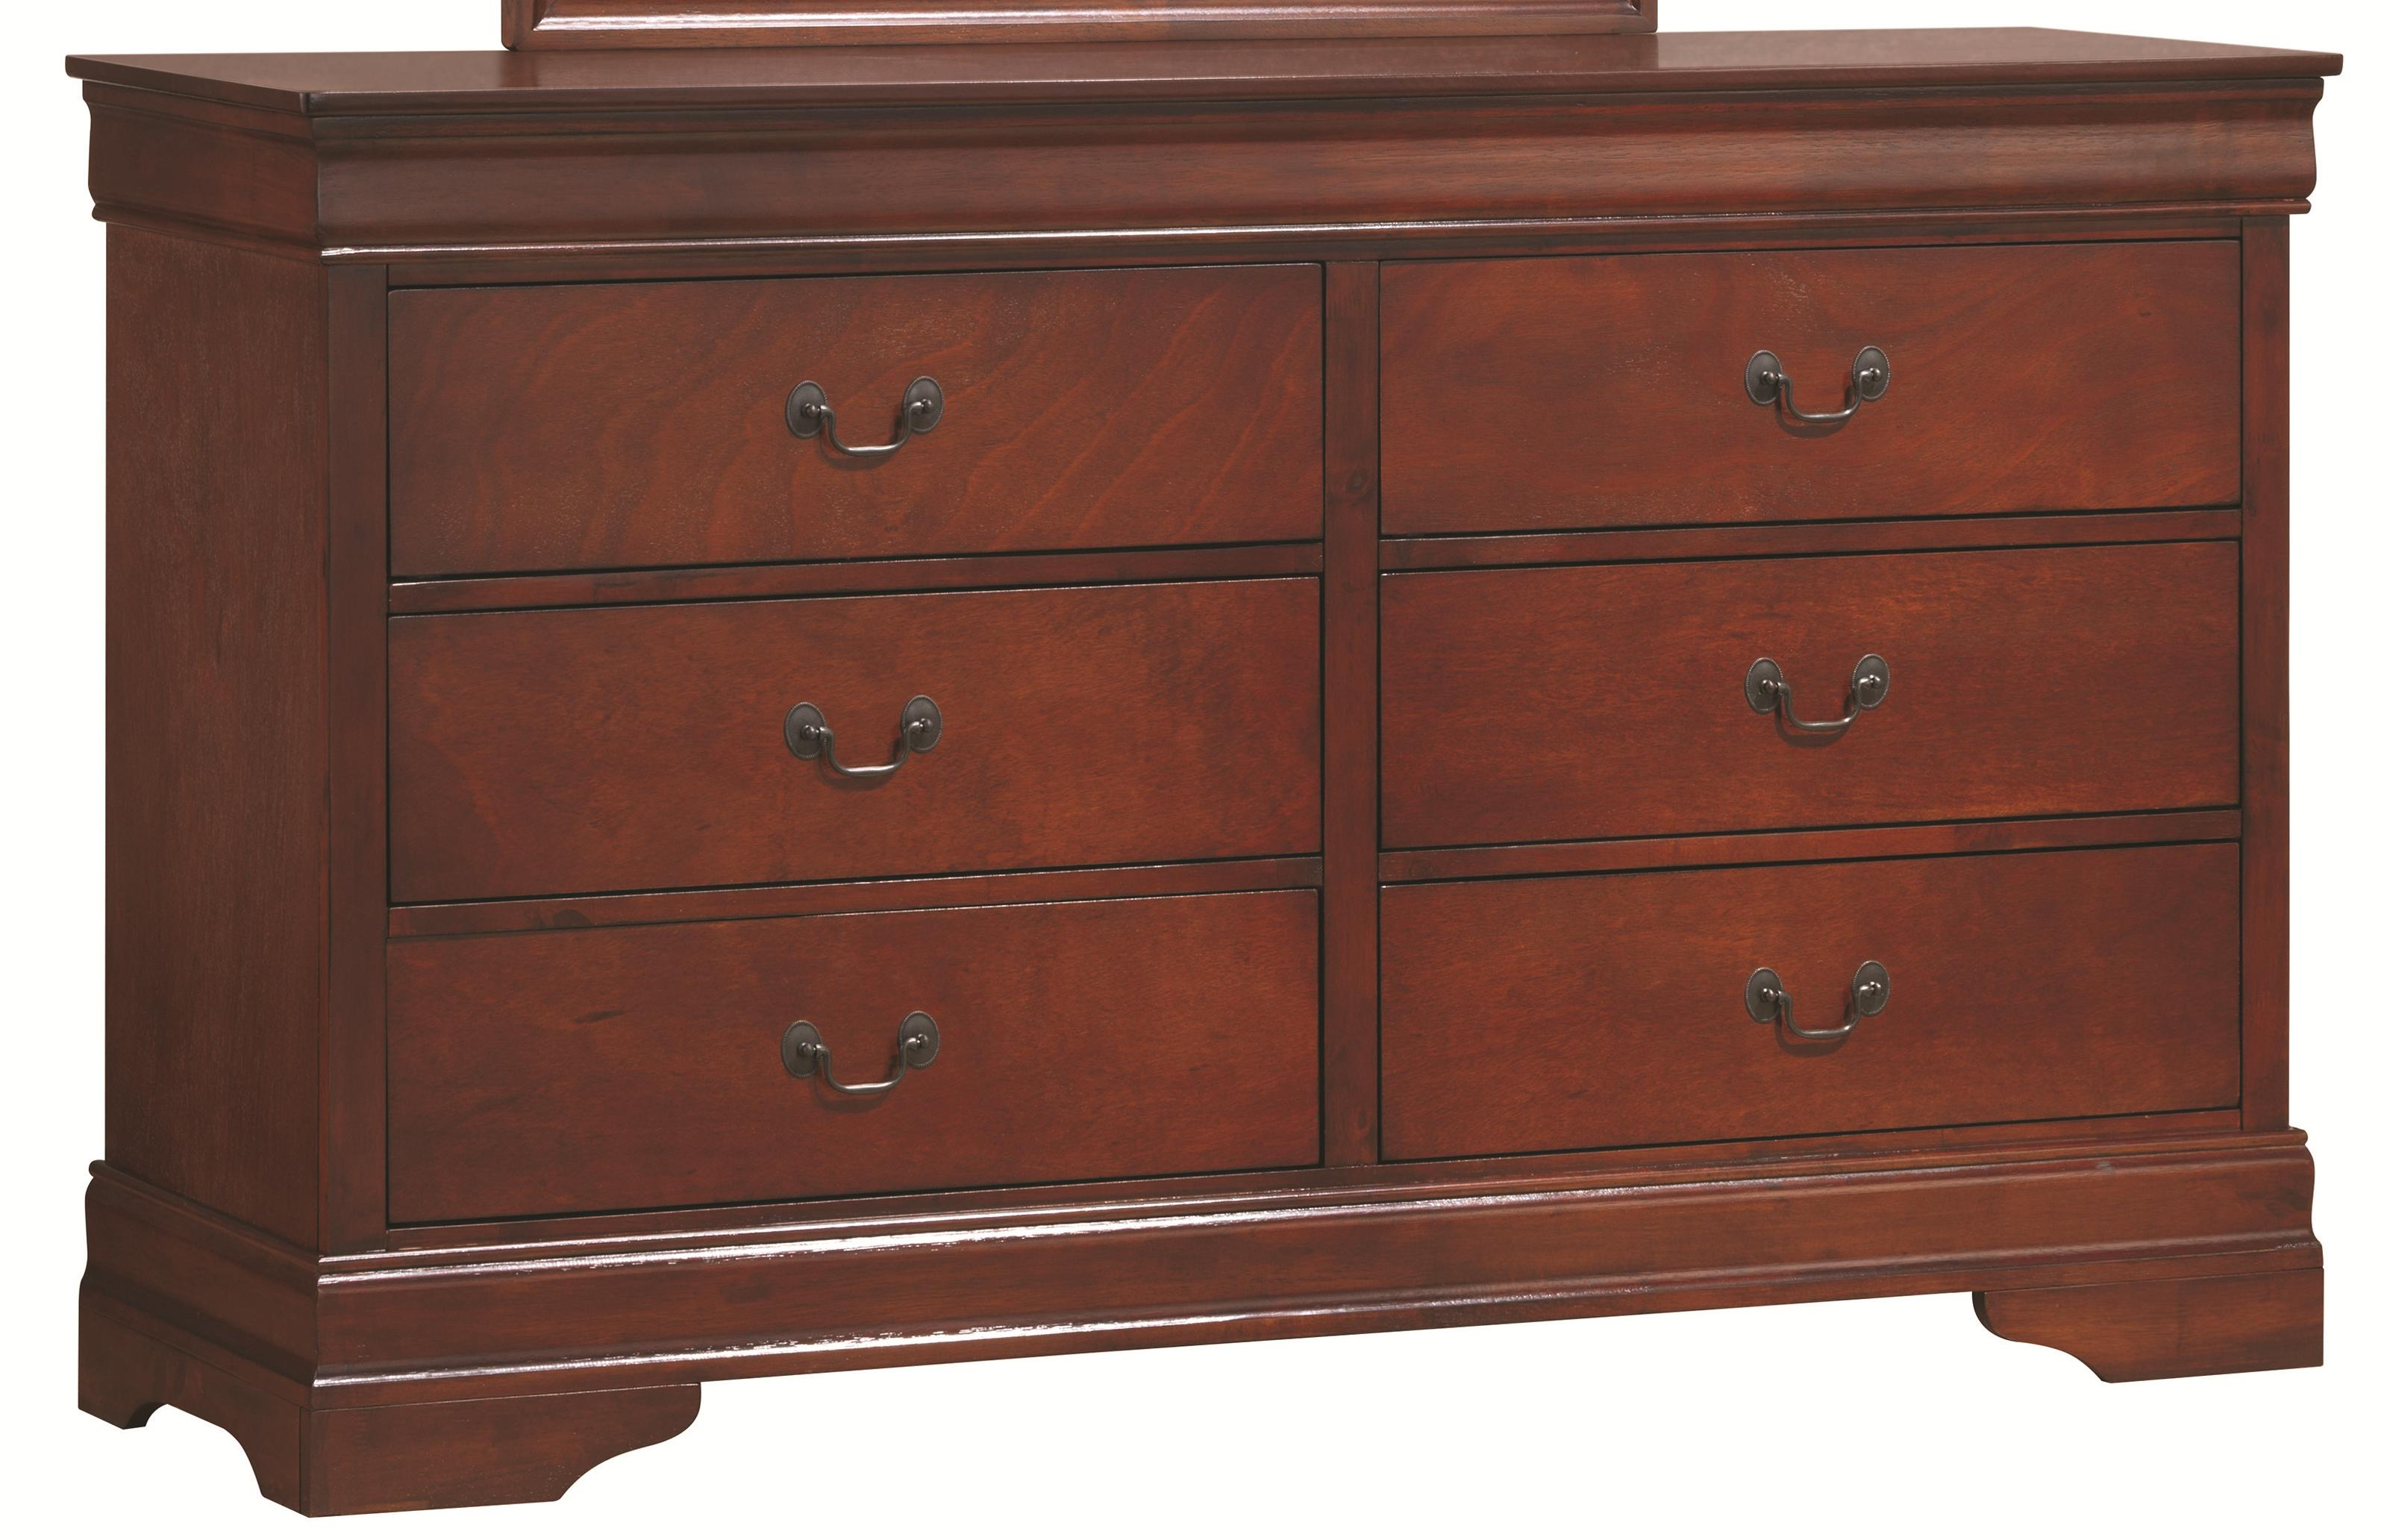 Coaster Louis Philippe Dresser - Item Number: 200433R